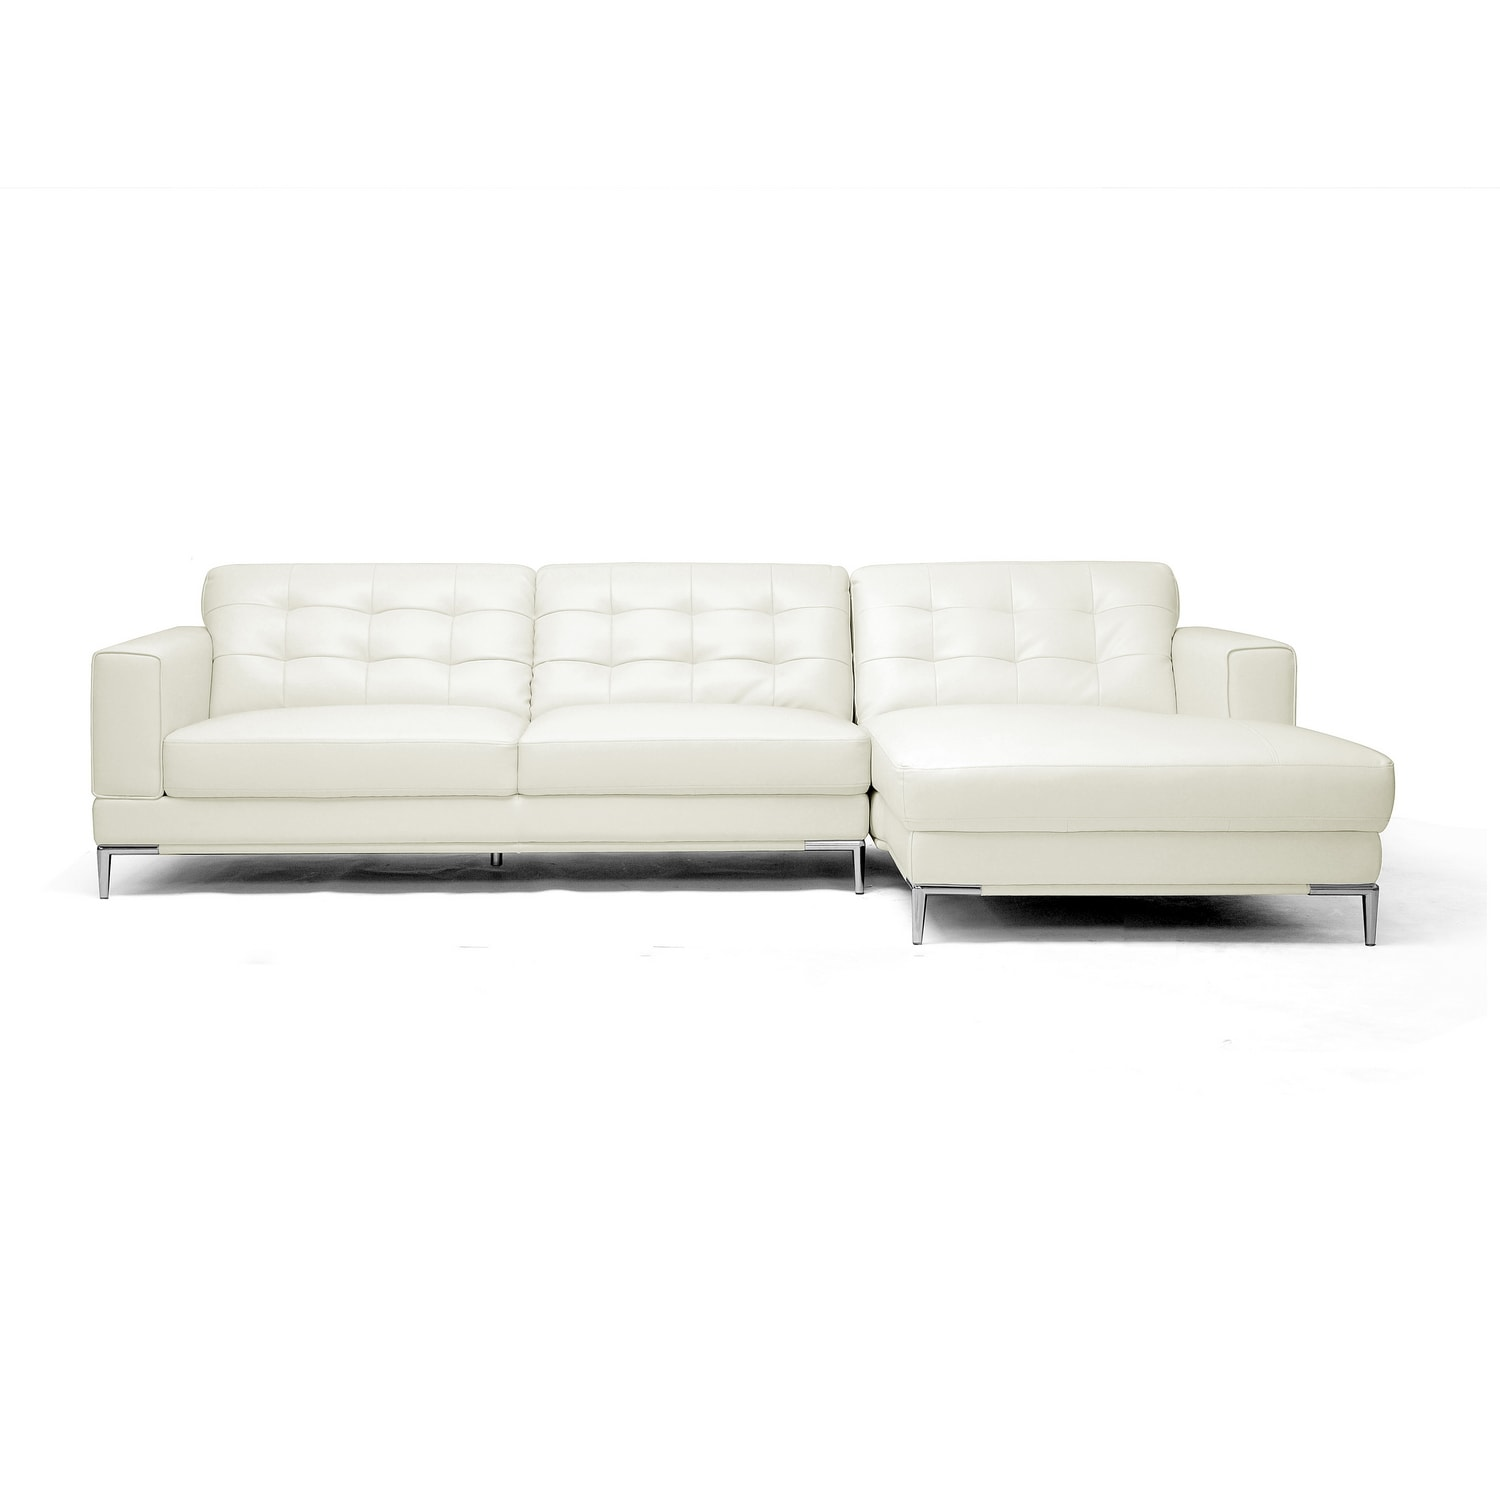 Babbitt sleek ivory bi cast leather modern sectional sofa for Modern sectional sofas